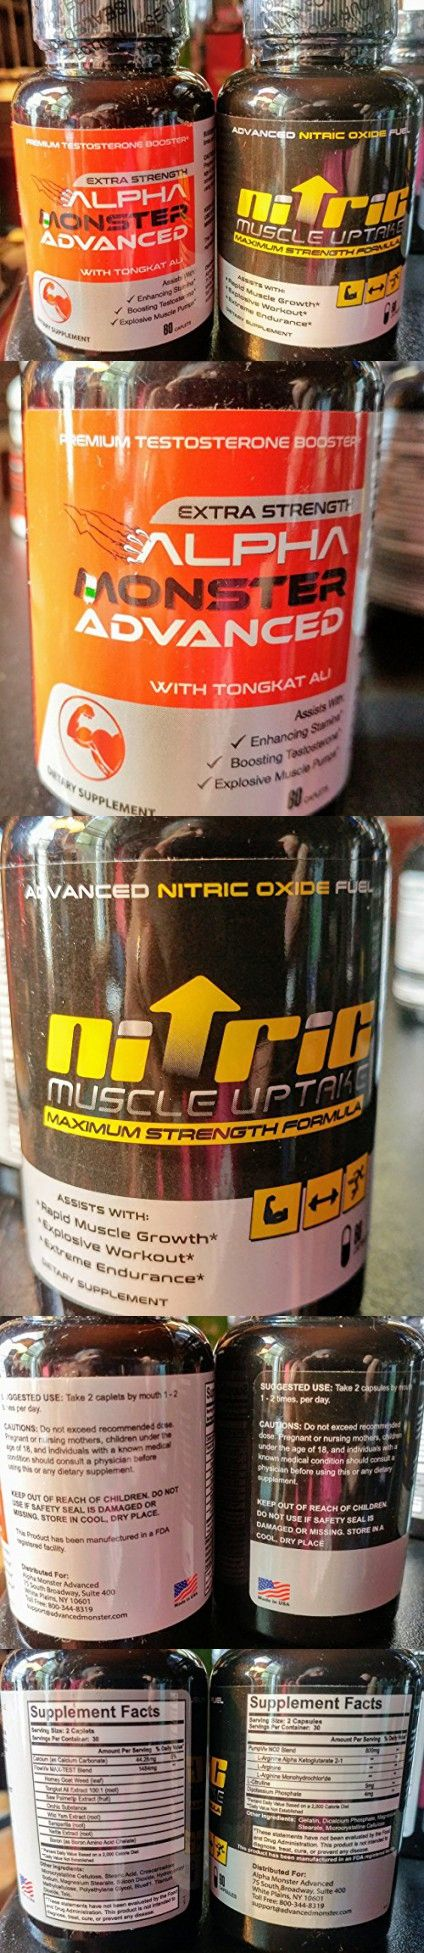 ALPHA MONSTER ADVANCED - Premium Testosterone Booster - and NITRIC OXIDE UPTAKE - Advanced Niric Oxide Fuel -